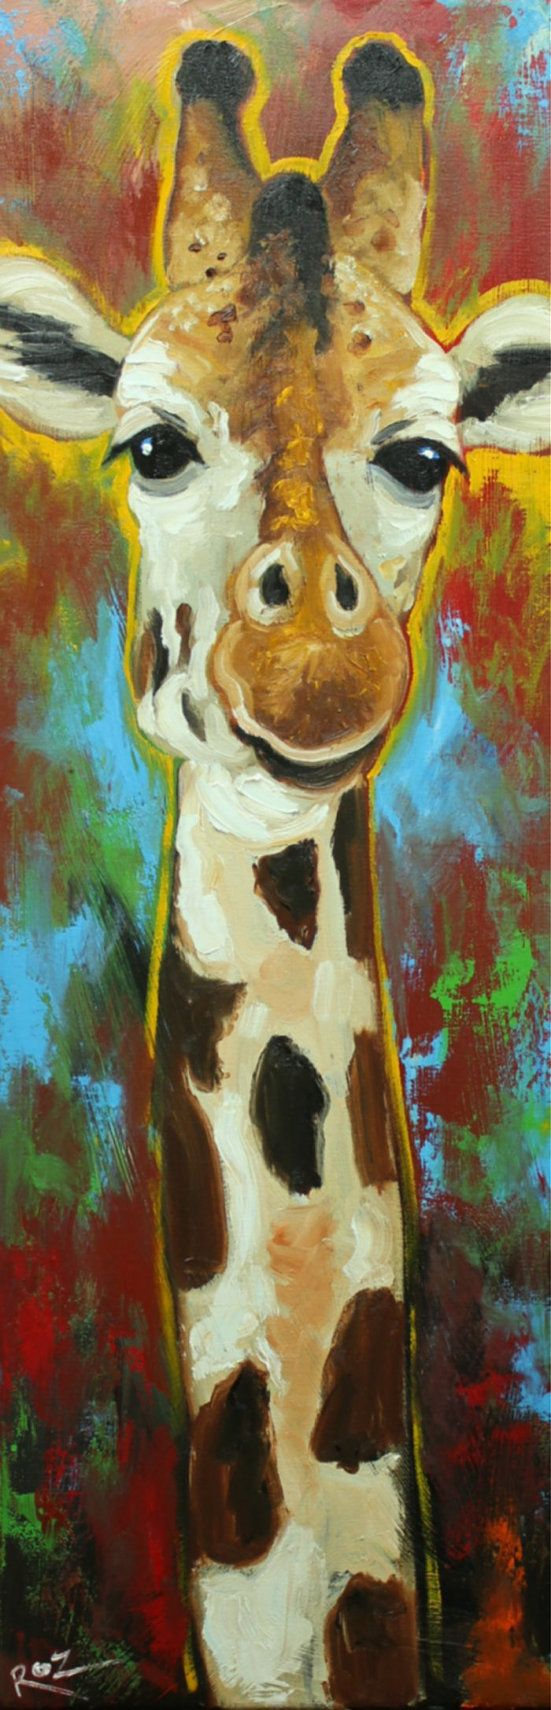 Giraffe 11 12x36 inch animal original oil painting by by RozArt